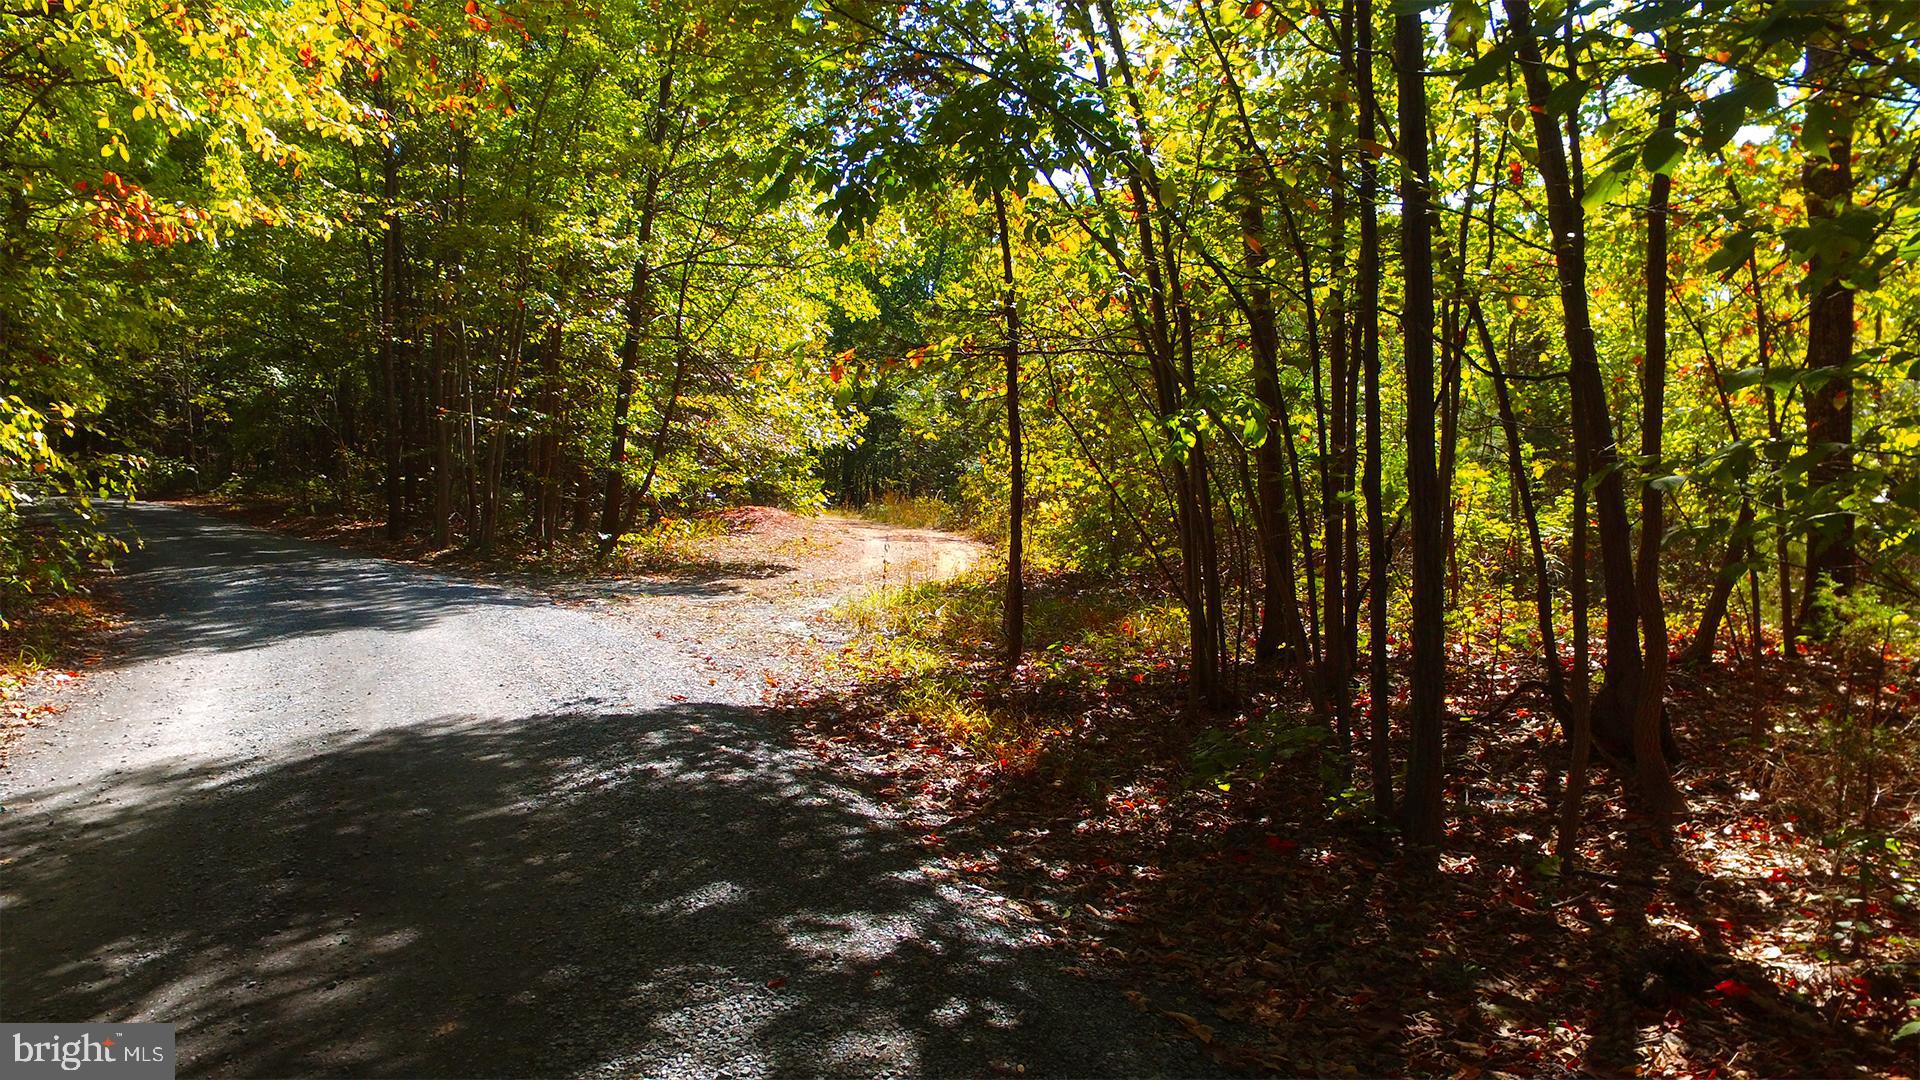 BUSHY RIDGE - LOT 1-A DRIVE, STAR TANNERY, VA 22654